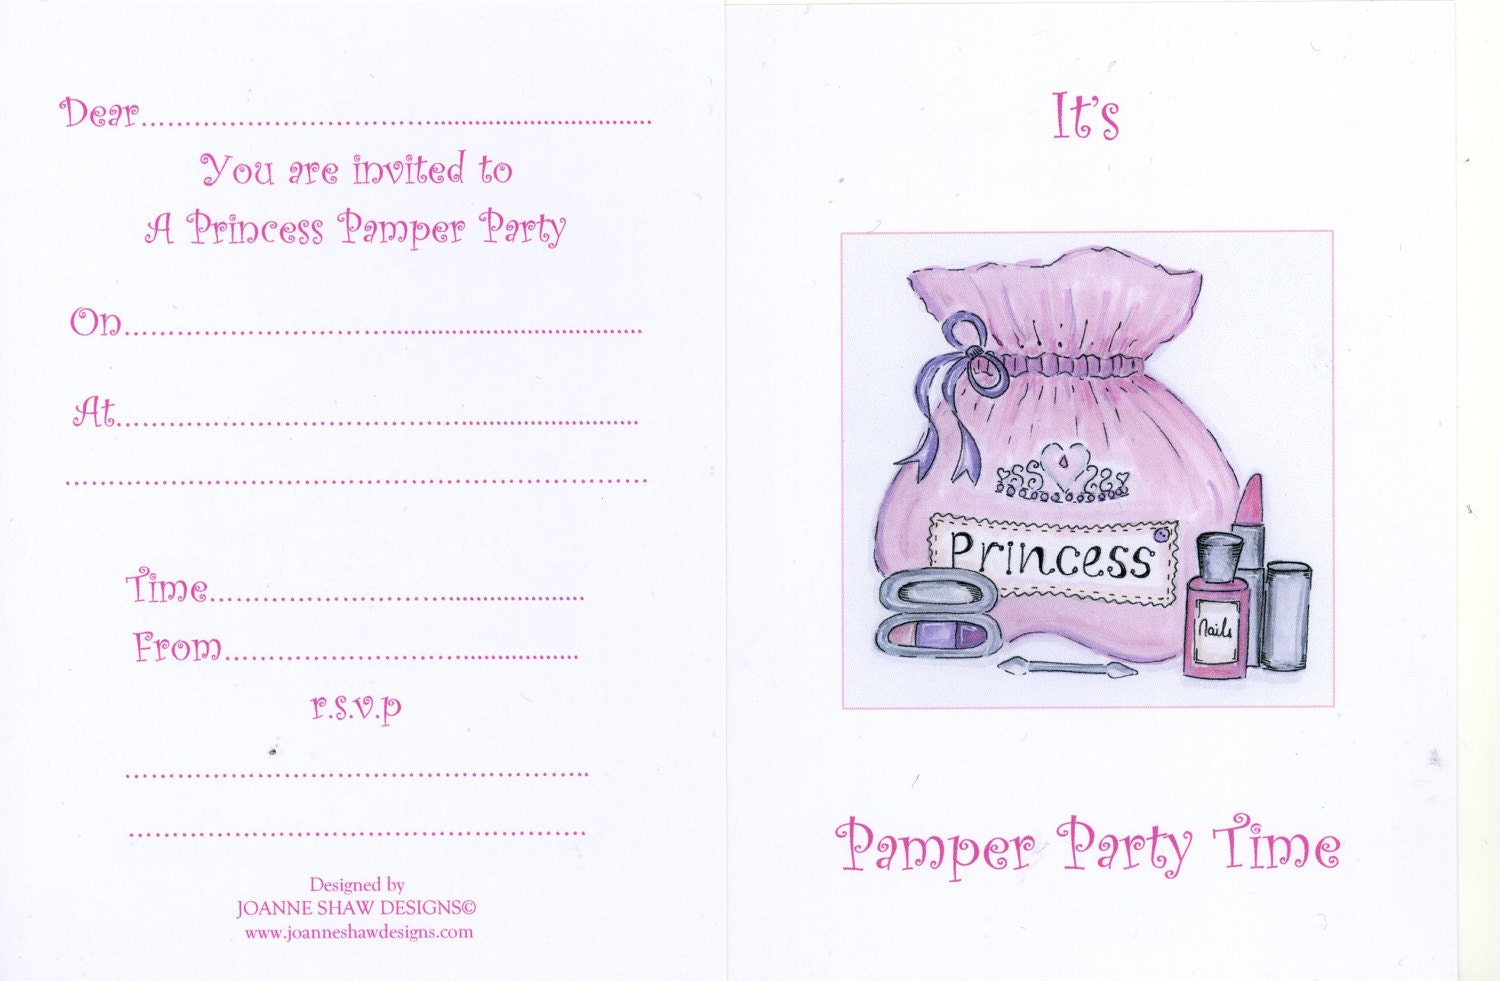 Princess Pamper Party Invitations Invites Girls